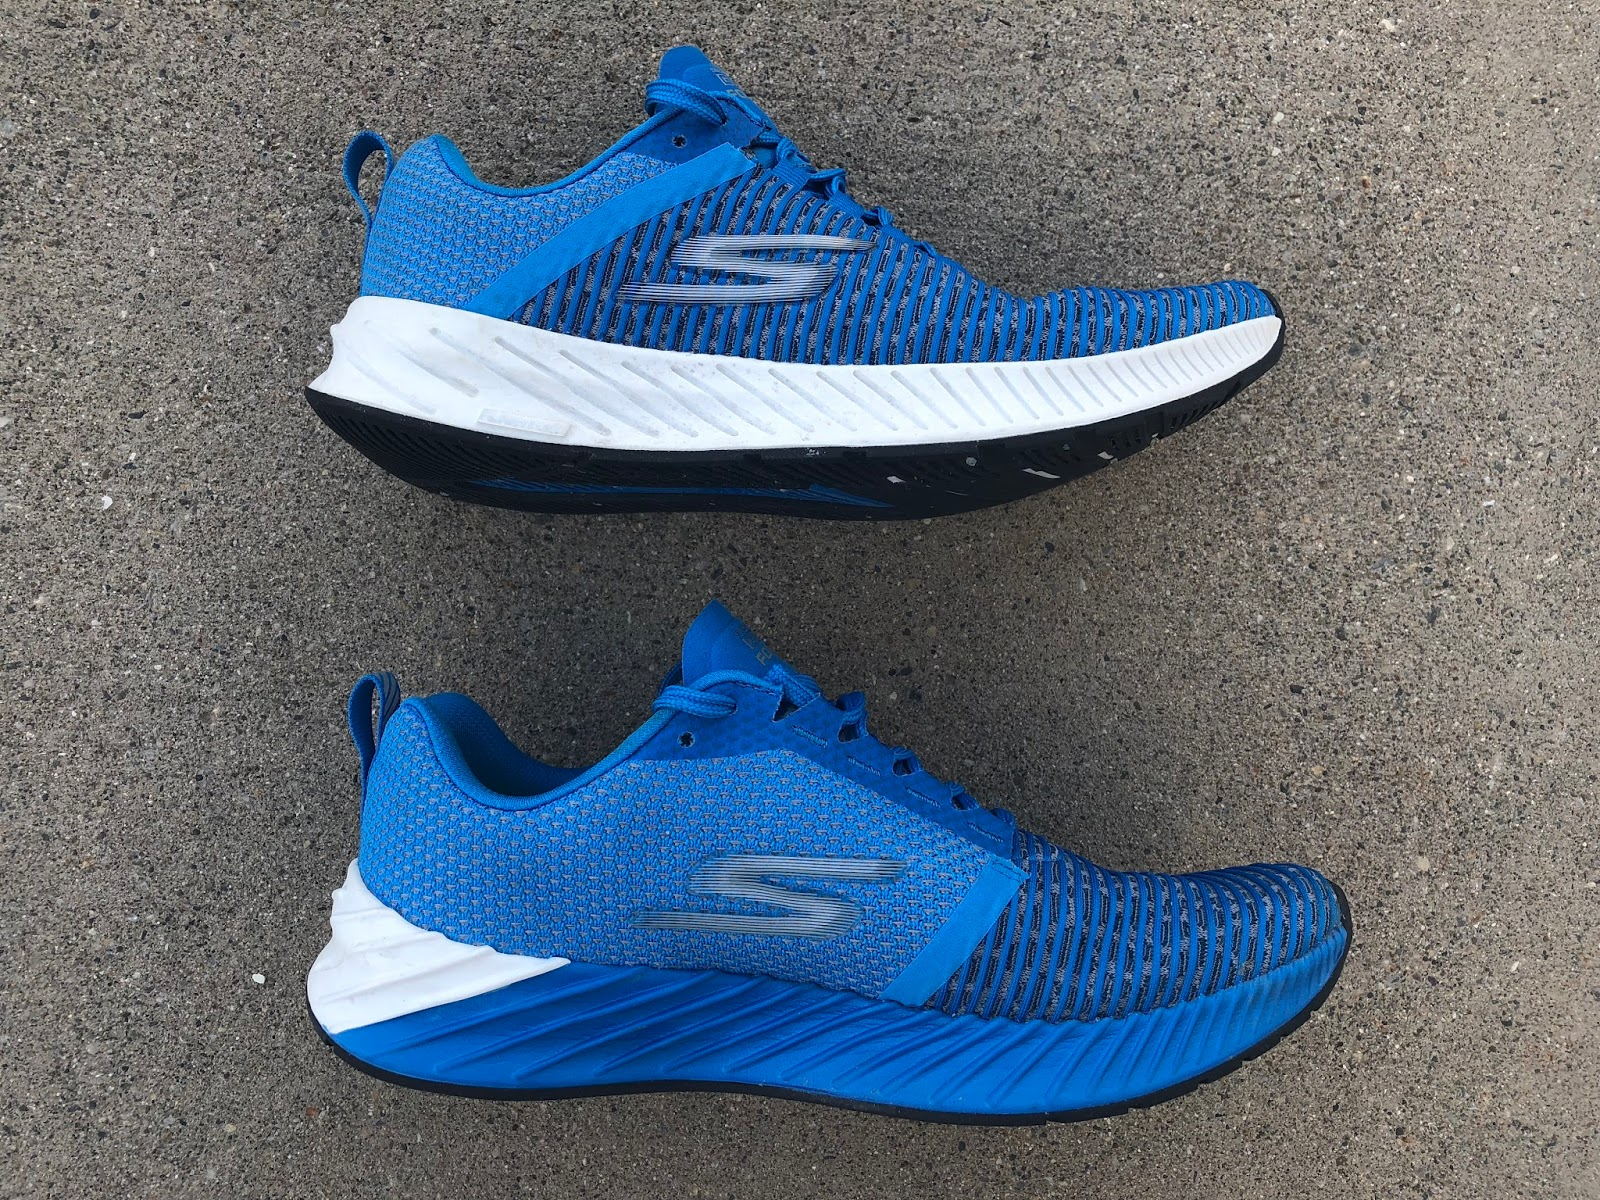 4f45d7e2ee4 Road Trail Run  First Runs Initial Impressions Review  Skechers ...